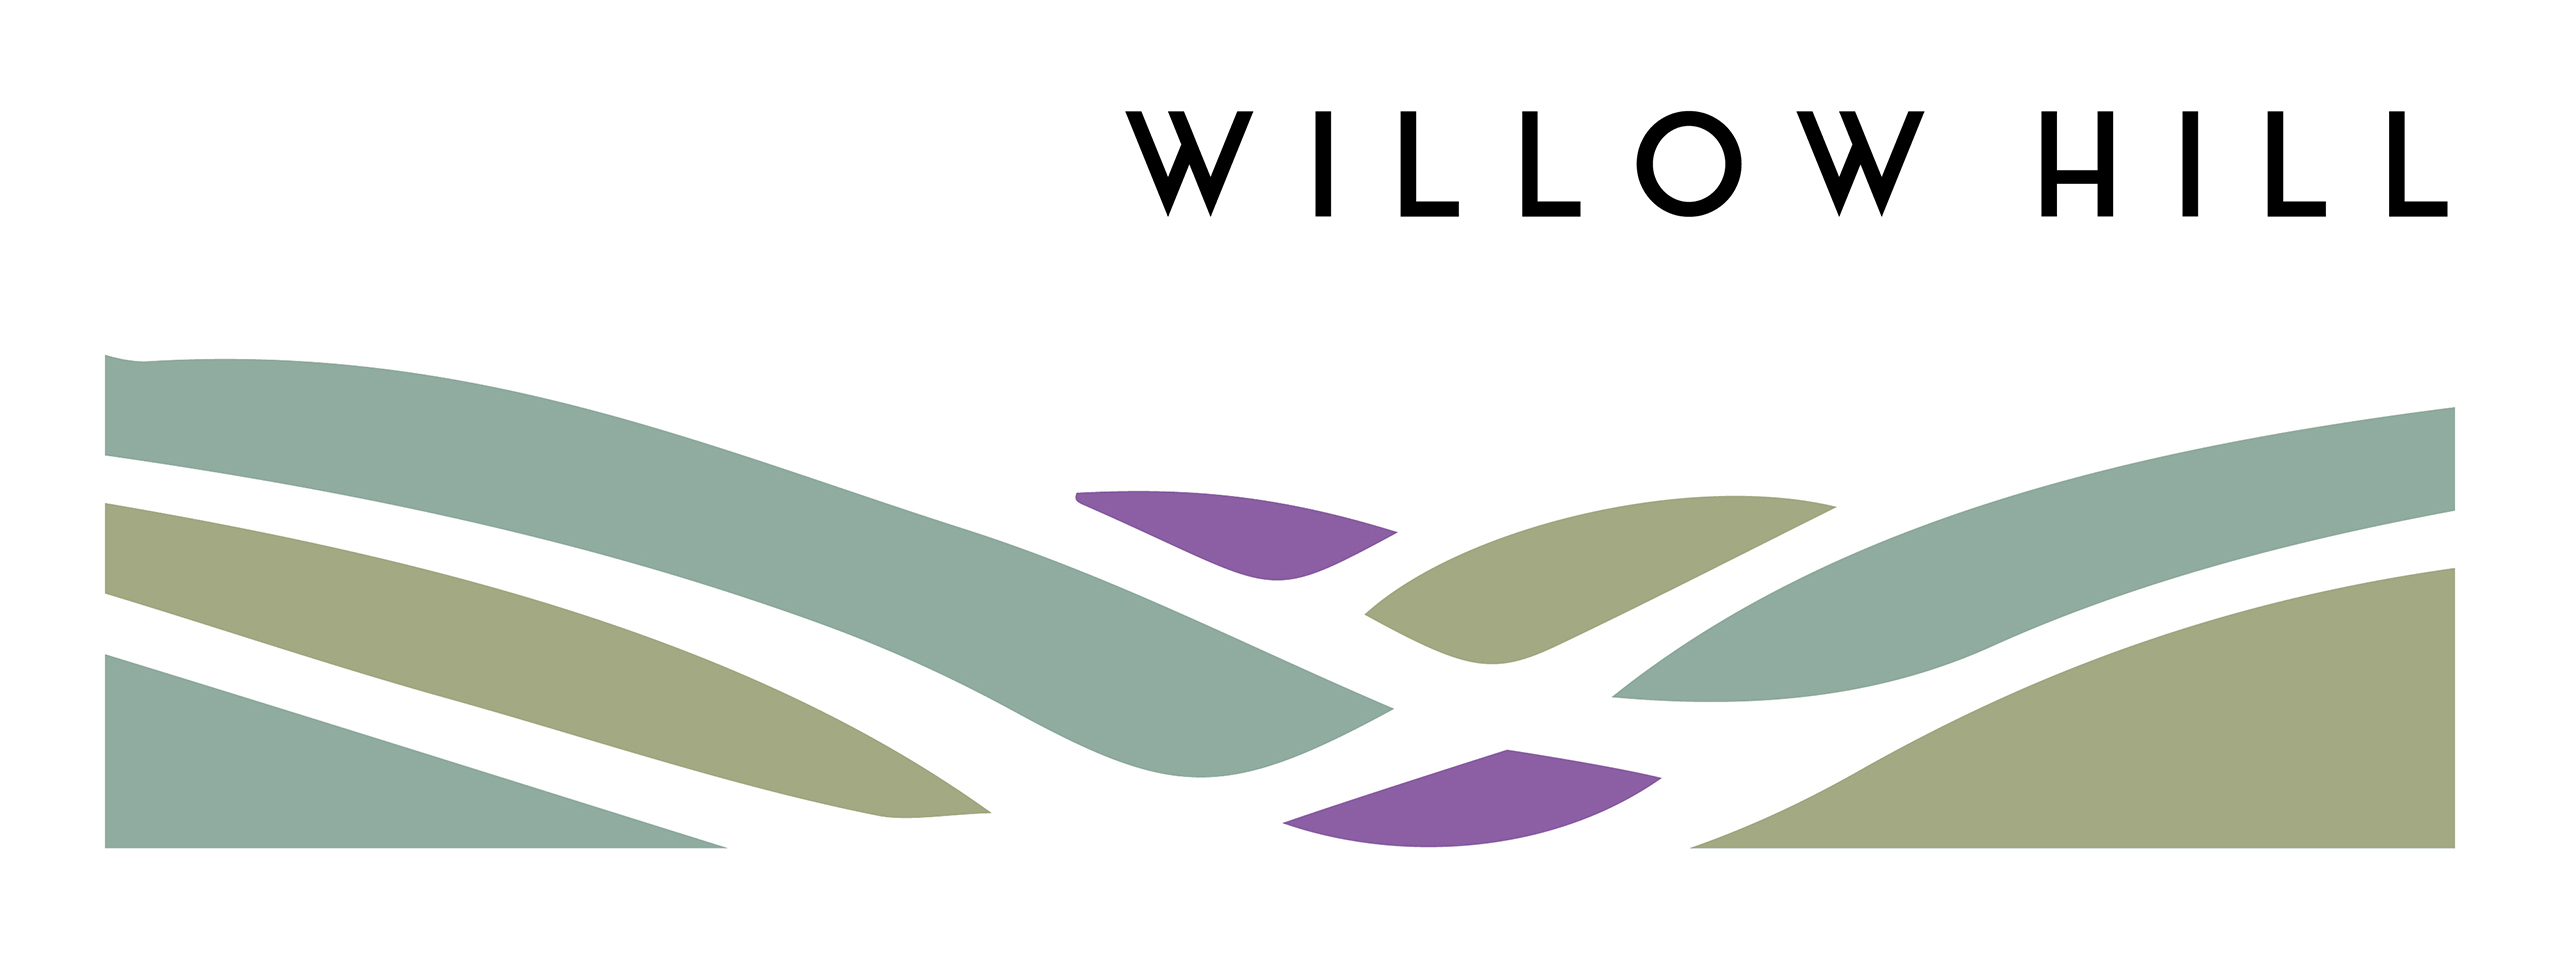 Willow Hill - Horizontal